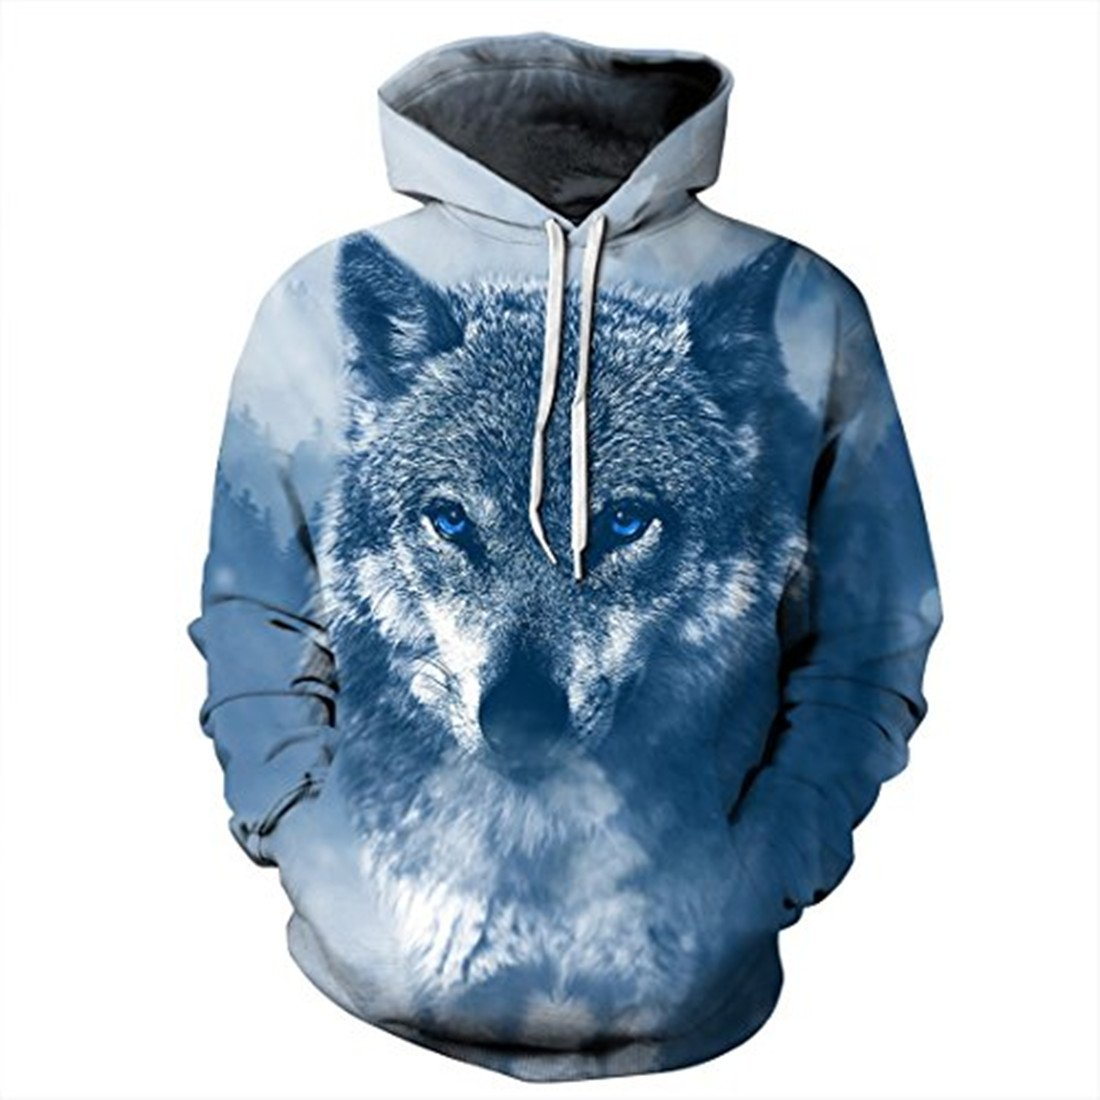 739f2d3704764d Wolf Cool Hoodies Suitable for Women Men Girl Boy